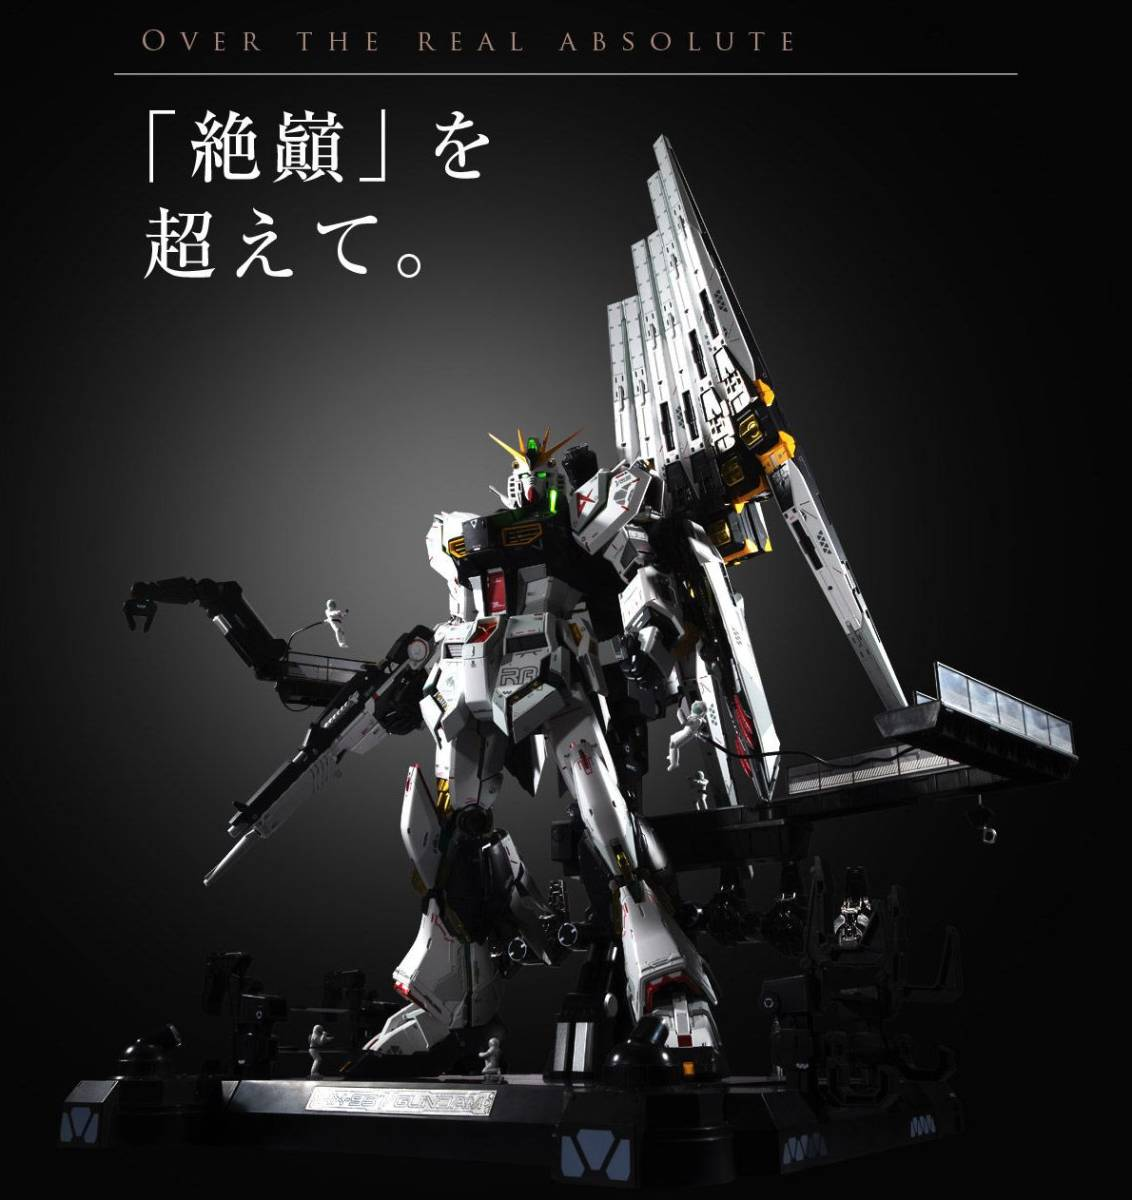 METAL STRUCTURE 解体匠機 RX-93 νガンダム &フィン・ファンネルセット  未使用新品 送料込み_画像4